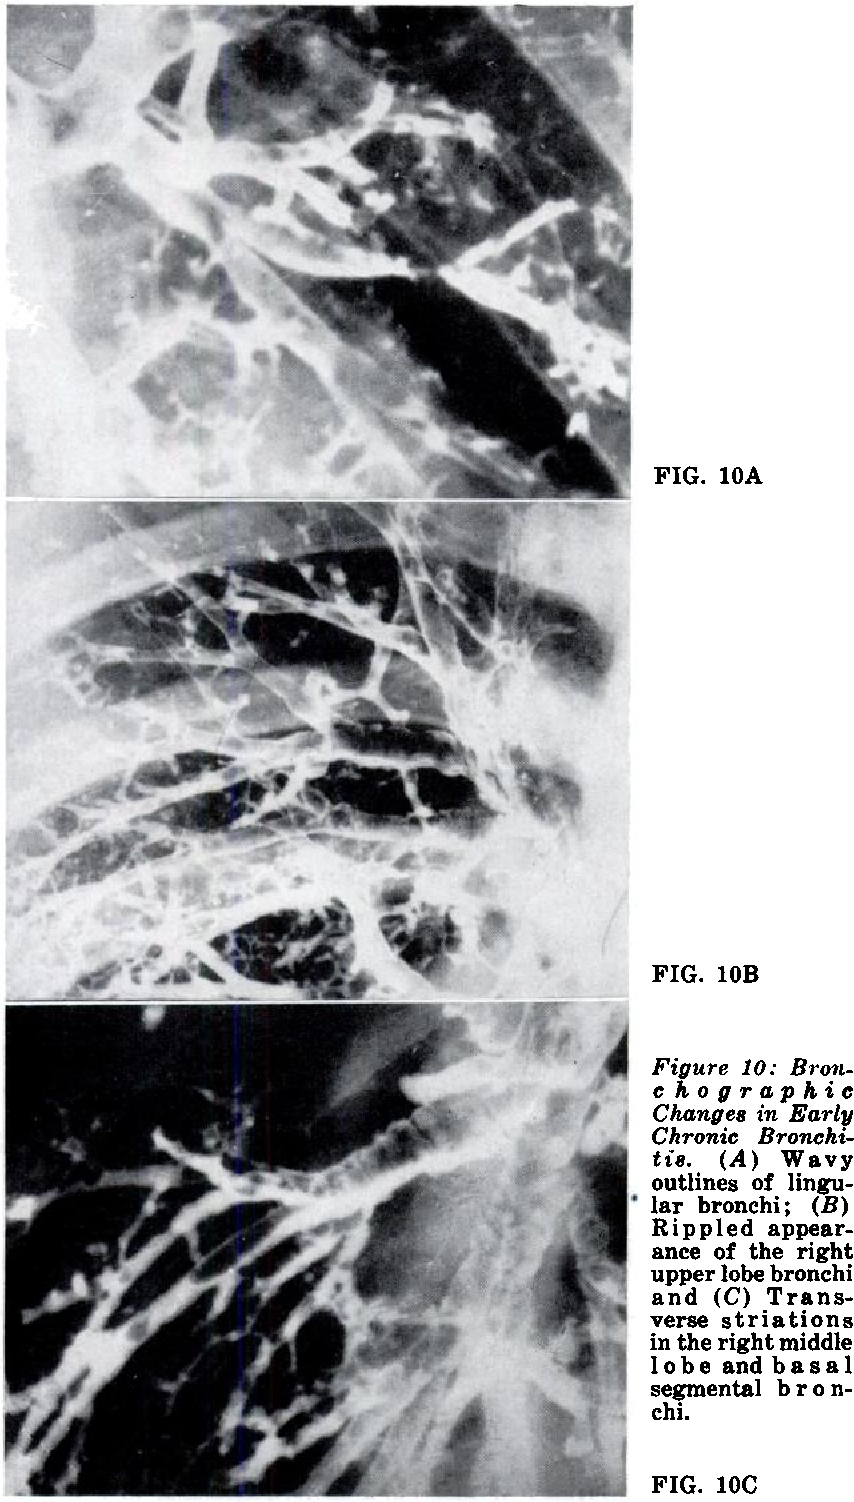 Figure 10: Branc ho graphic Change8 in Early Chronic Bronchitzs. (A) Wavy outlines of lingular bronchi; (B) Rippled appearance of the right upper lobe bronchi and (C) Transverse striations in the right middle lobe and basal segmental b r o nchi.